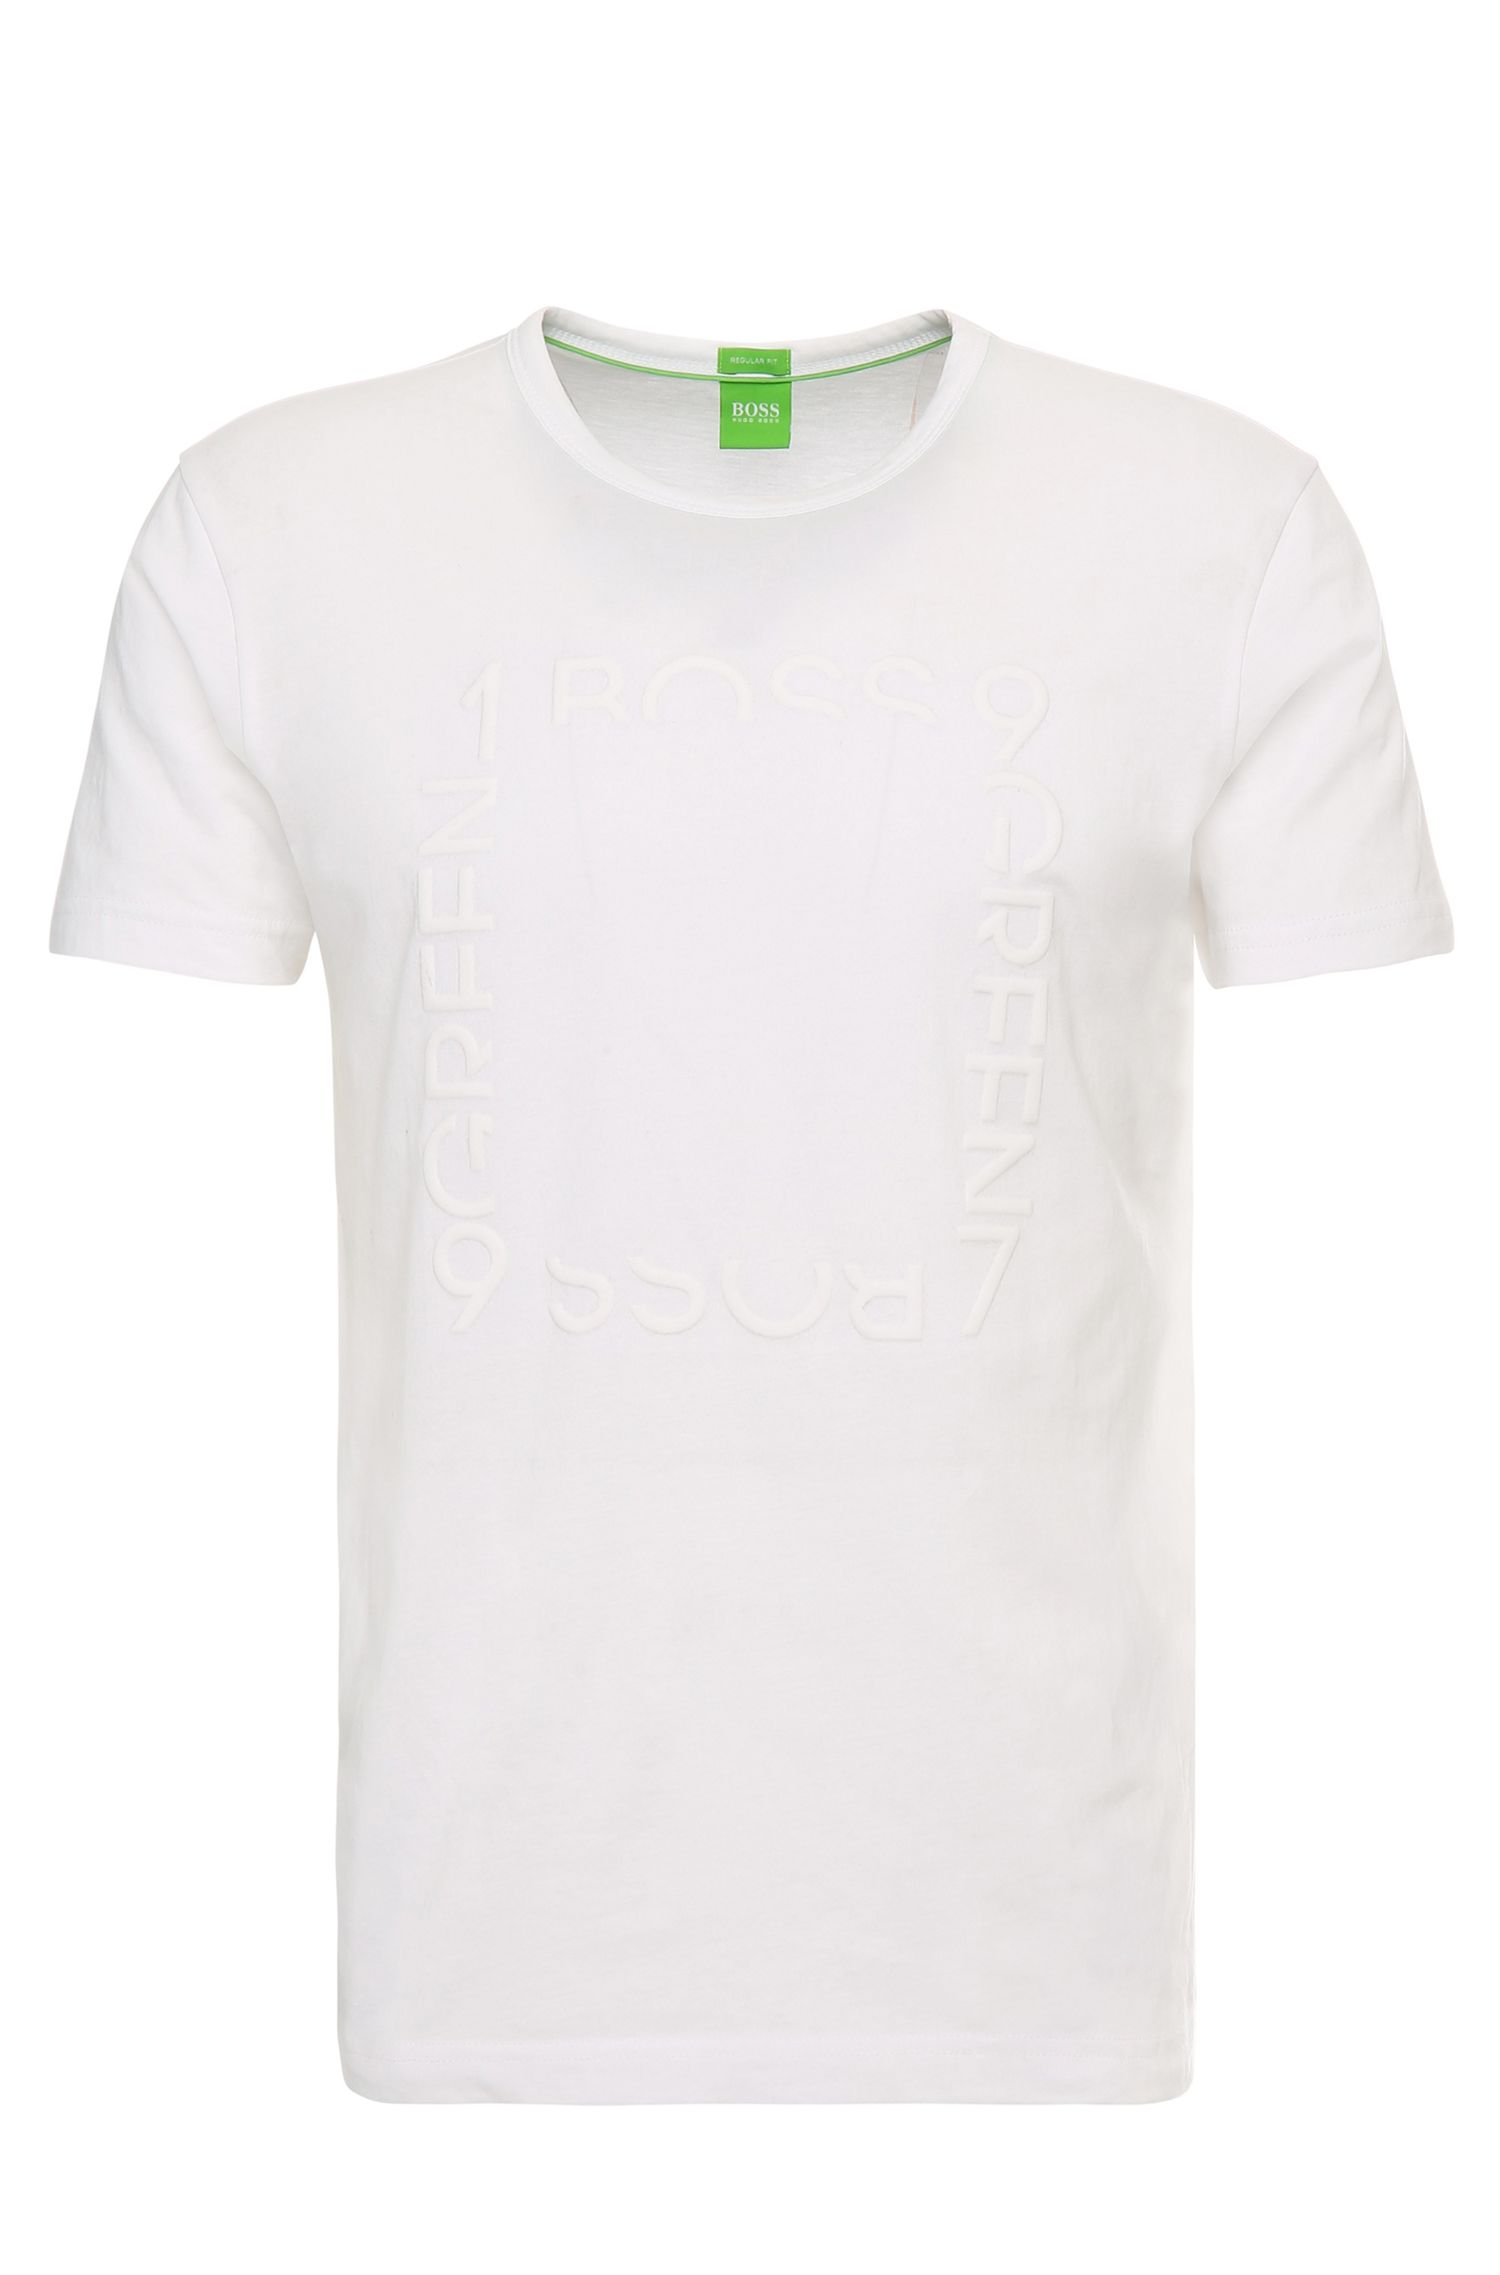 T-shirt Regular Fit en coton à inscriptions logo : « Tee 3 »